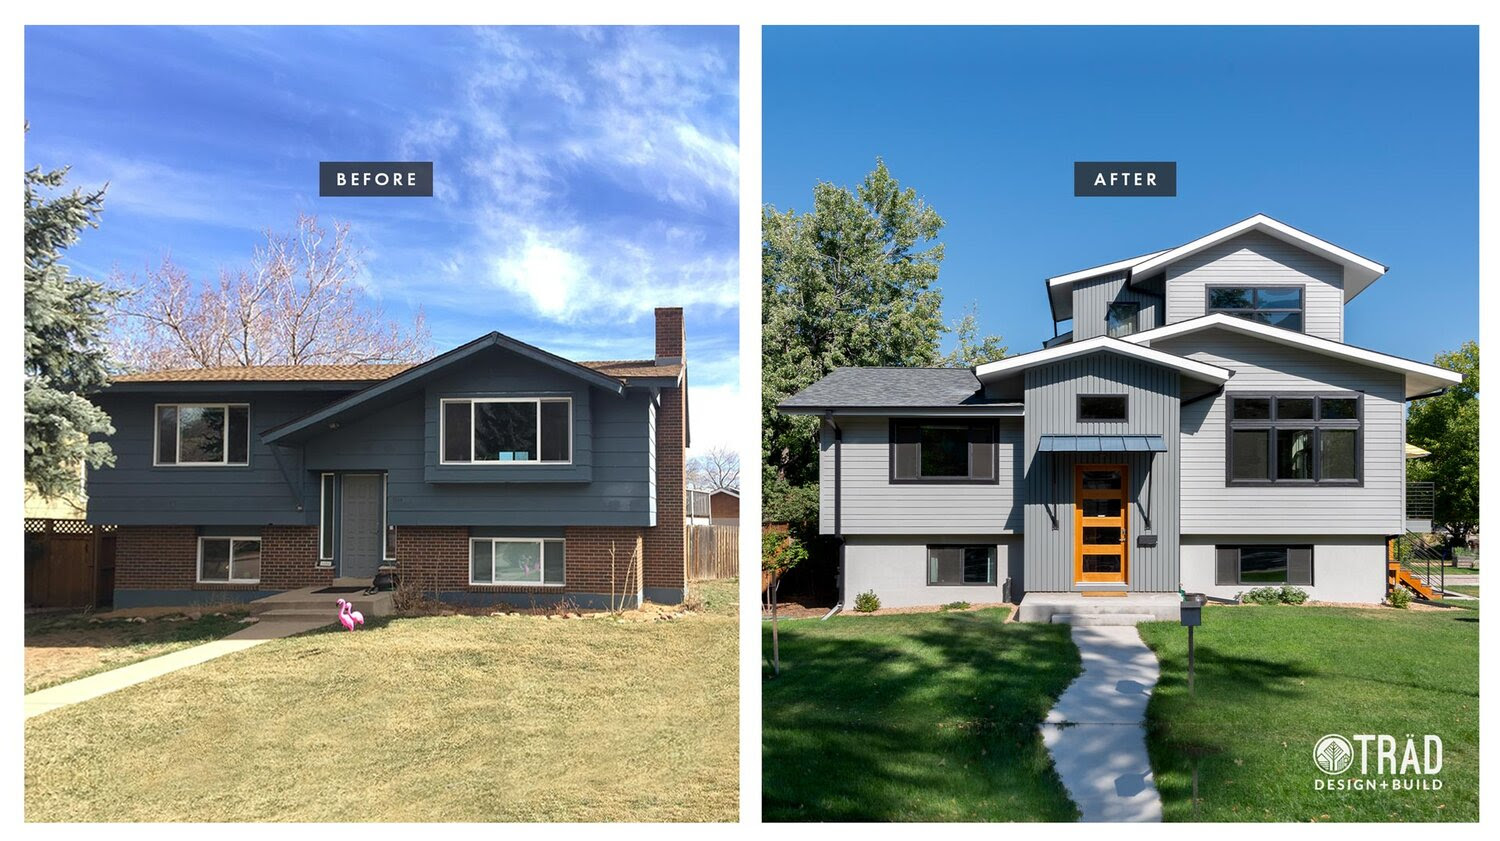 Before After Remodel From Homely Split Level To Eclectic Contemporary Trad Design Build